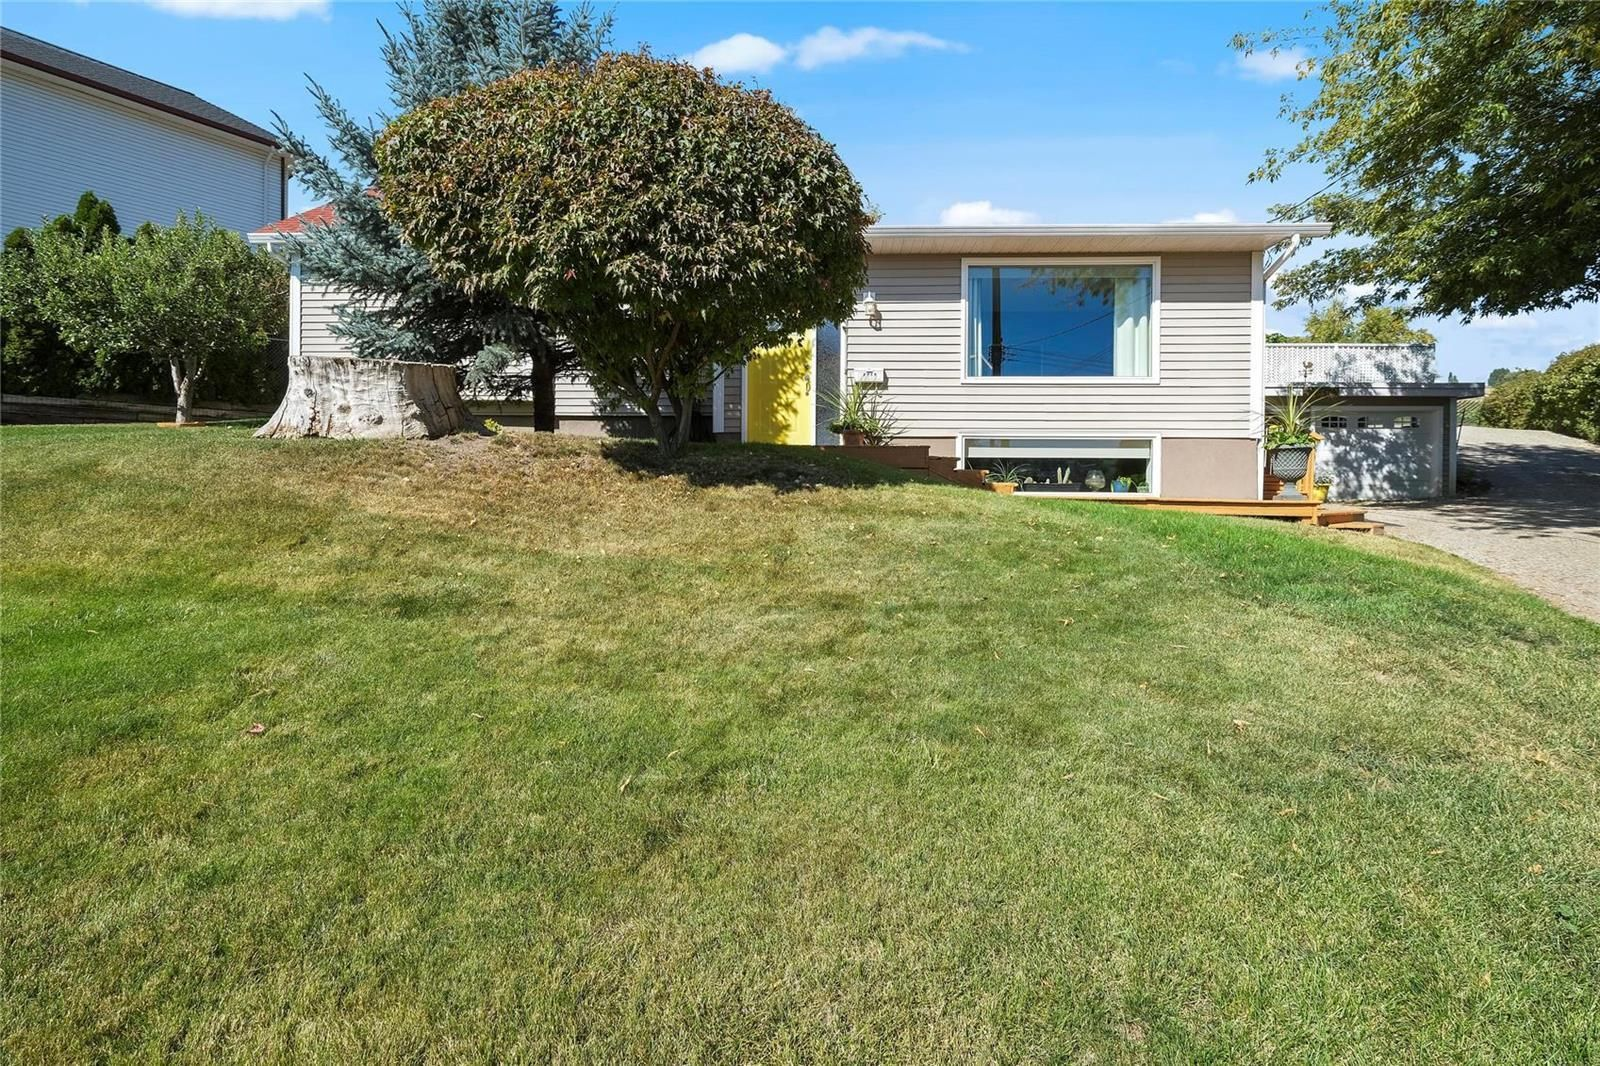 Main Photo: 4513 27 Avenue, in Vernon: House for sale : MLS®# 10240576